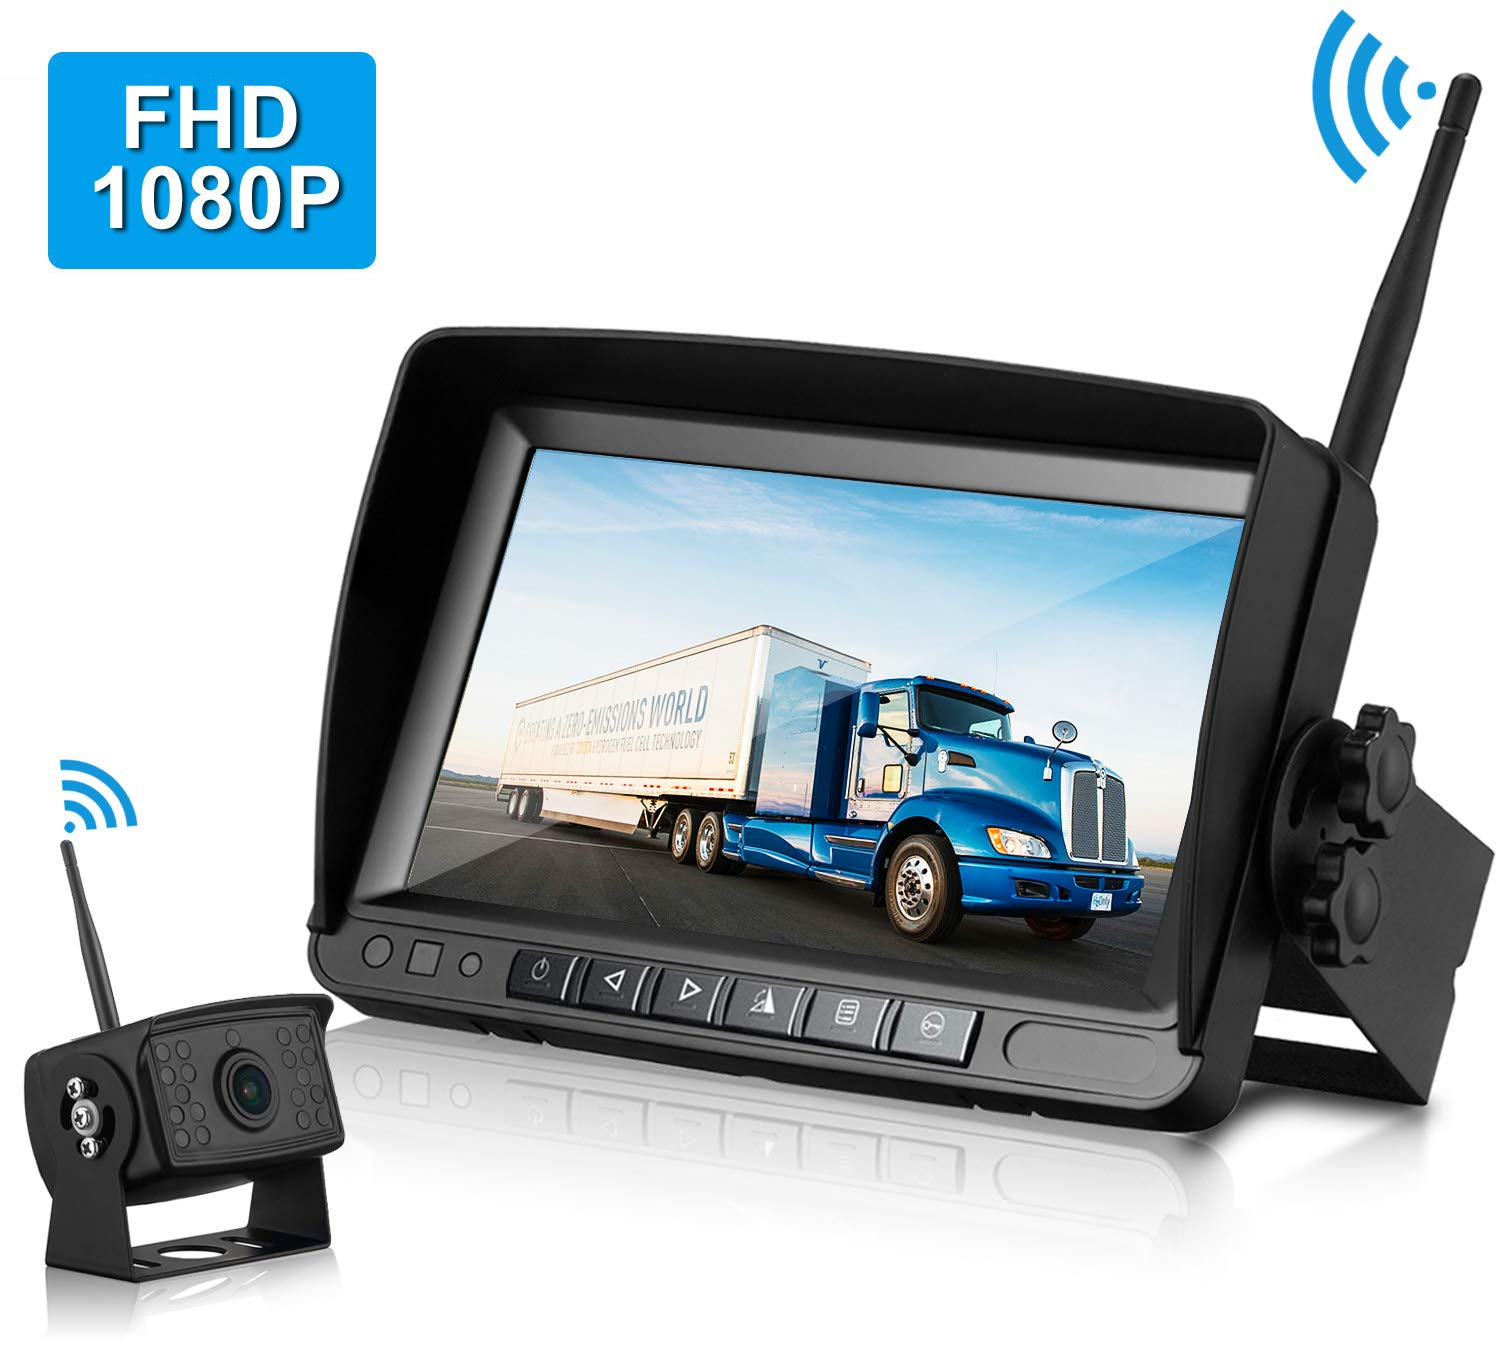 ZSMJ FHD 1080P Digital Wireless Backup Camera with 7'' Monitor Support Dual/Quad Split Screen for Trailers,RVs,Trucks,Campers High-Speed Observation System Guide Lines On/Off by DoHonest